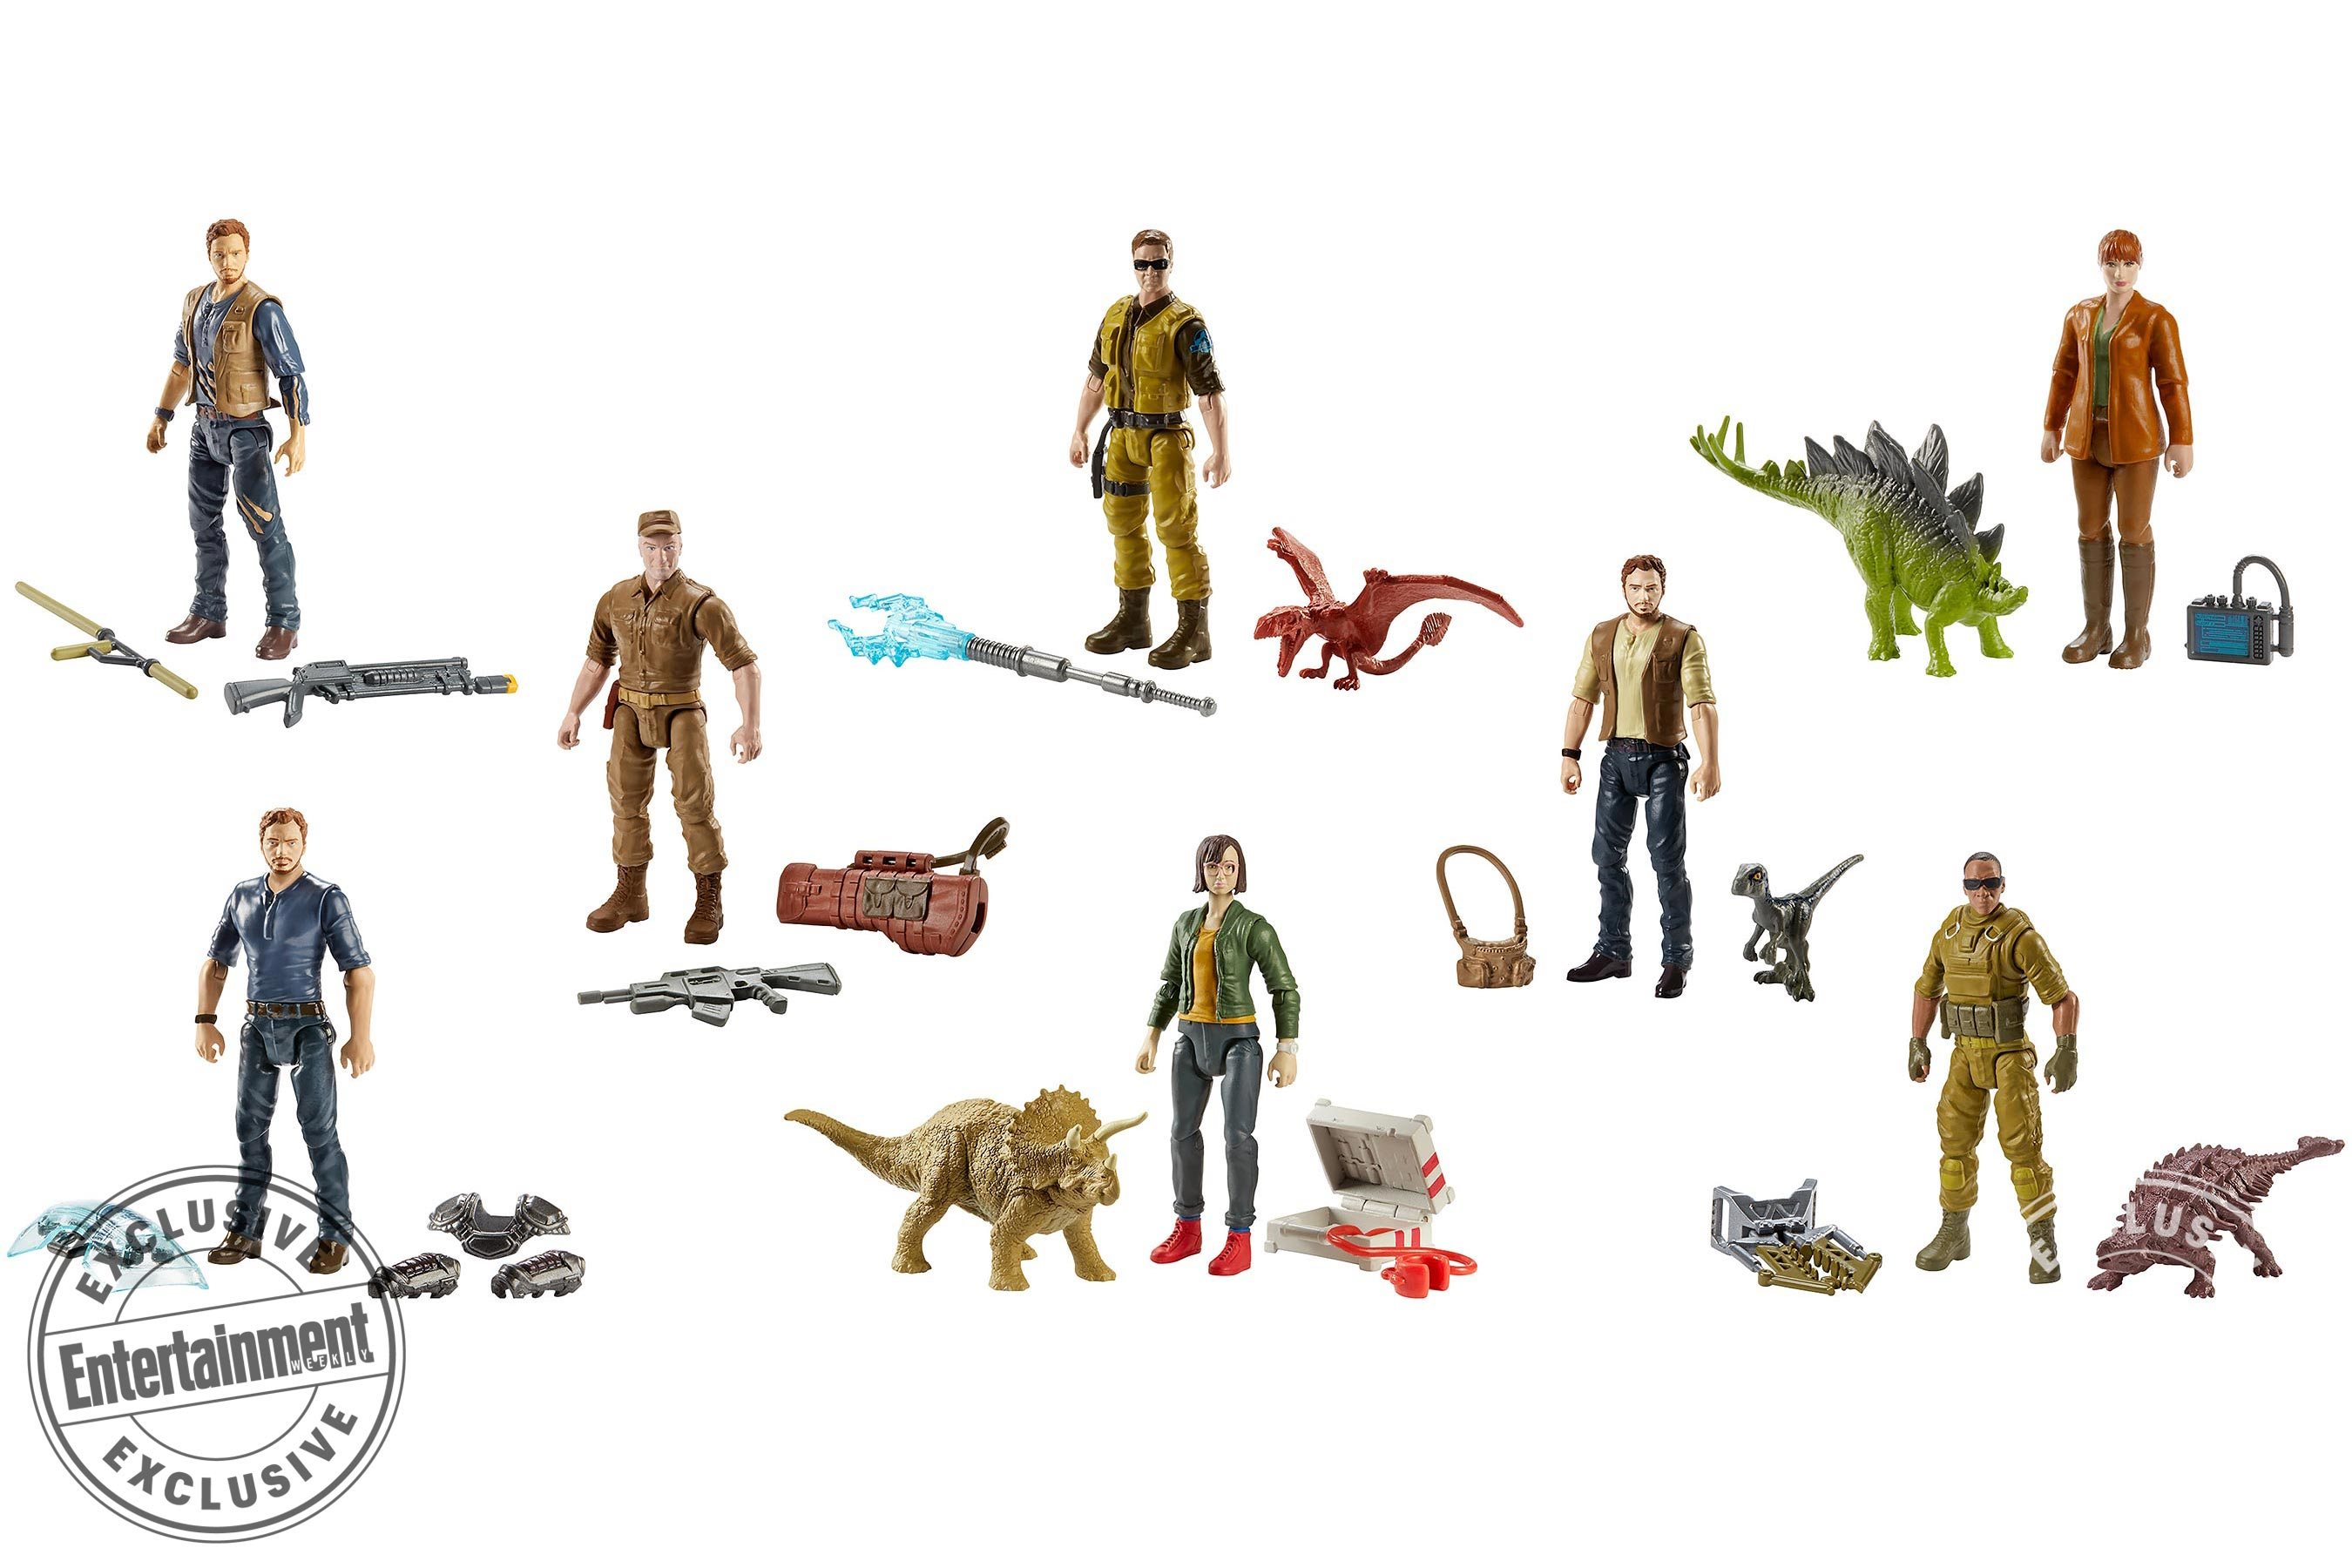 jurassic-world-basic-figure-assortment.jpg